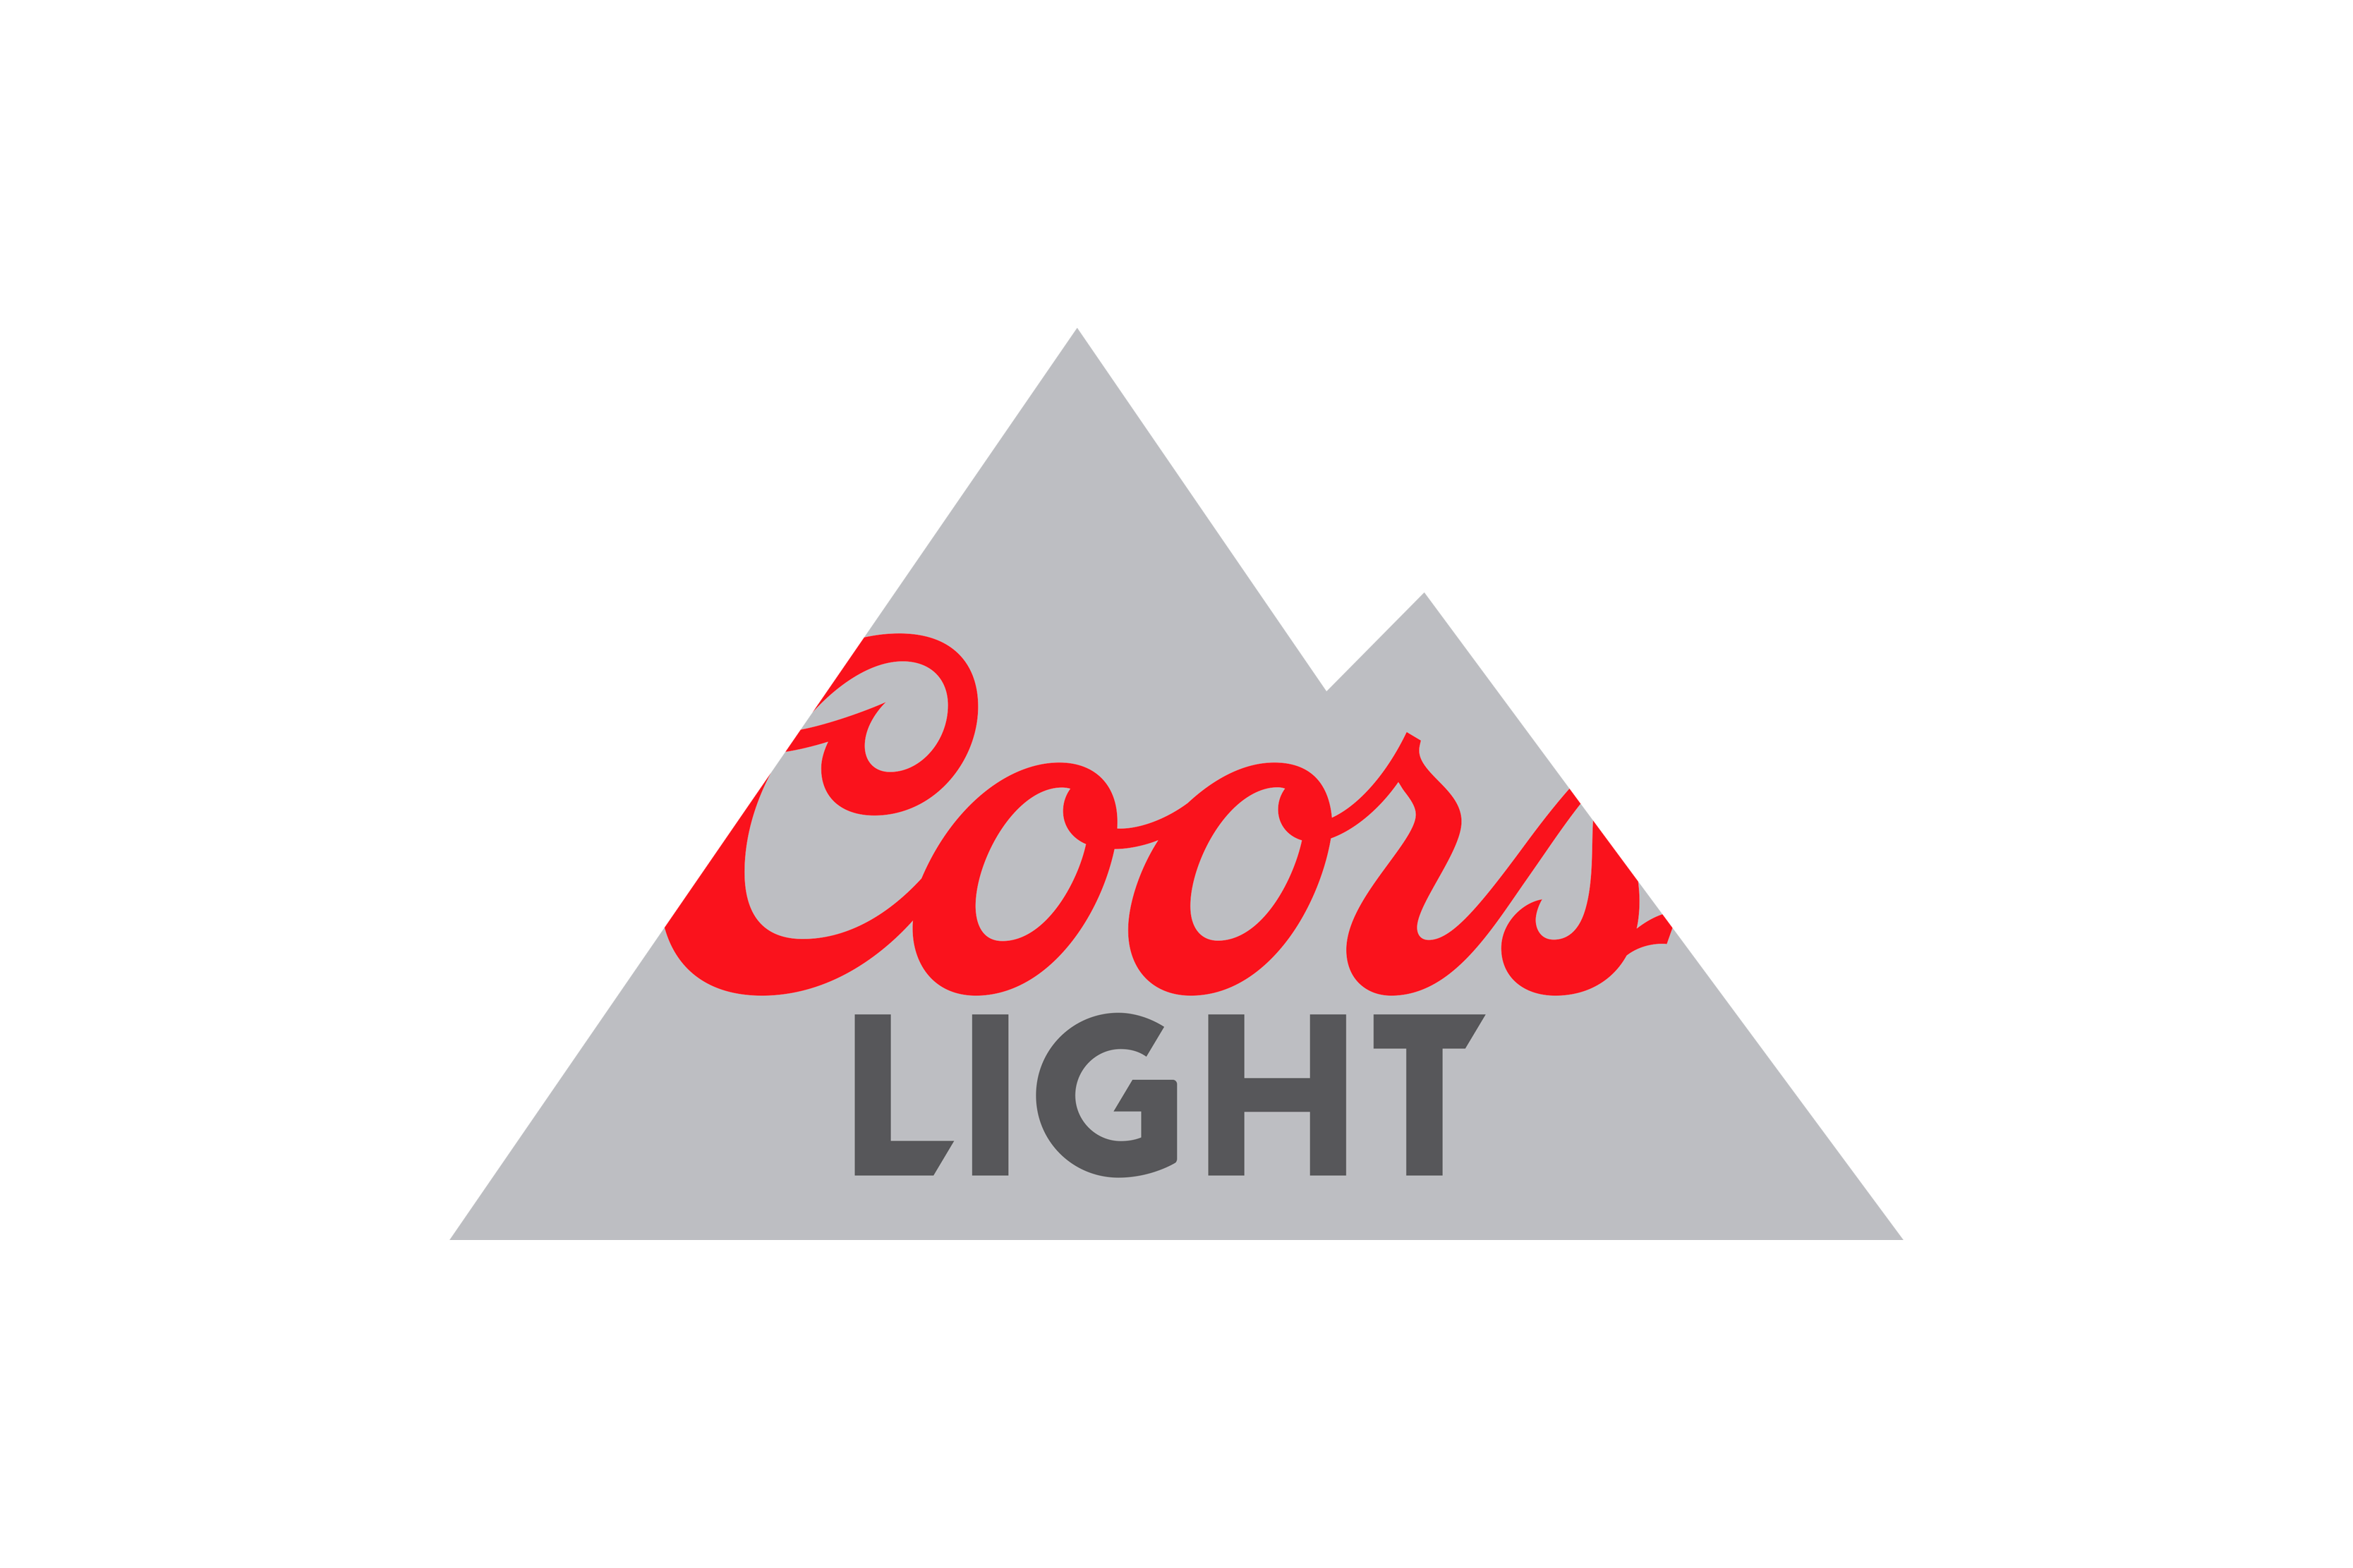 Coors Light By Turner Duckworth Coors Light Coors Light